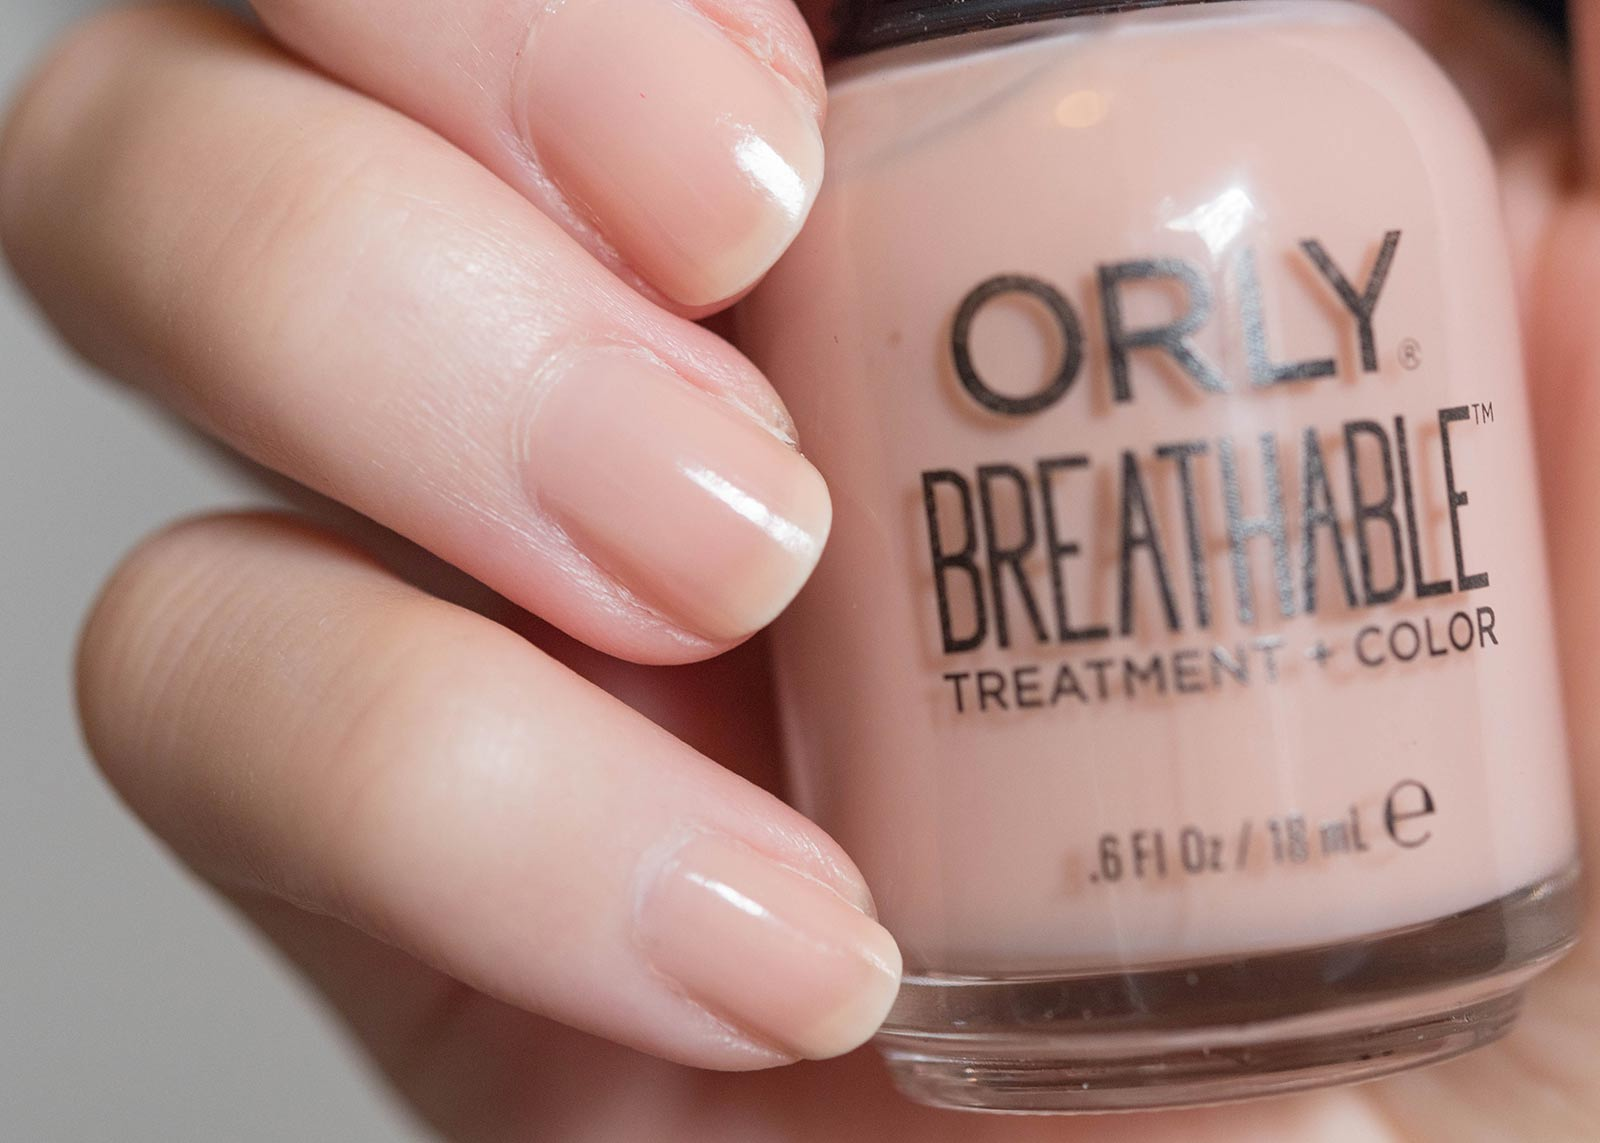 Orly Breathable nail polish Nourishing Nude swatch